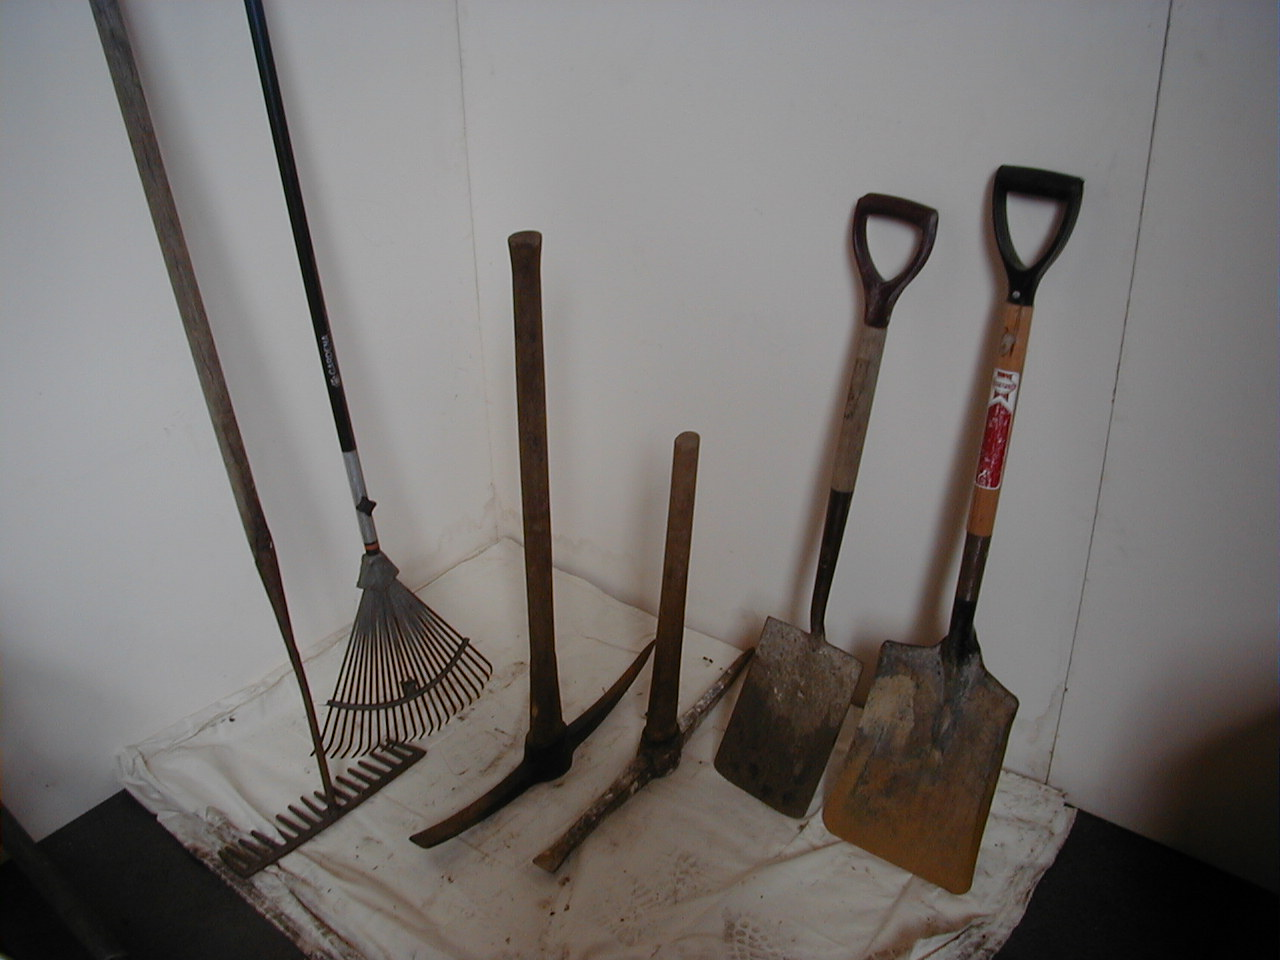 Building Site Tools - various tools